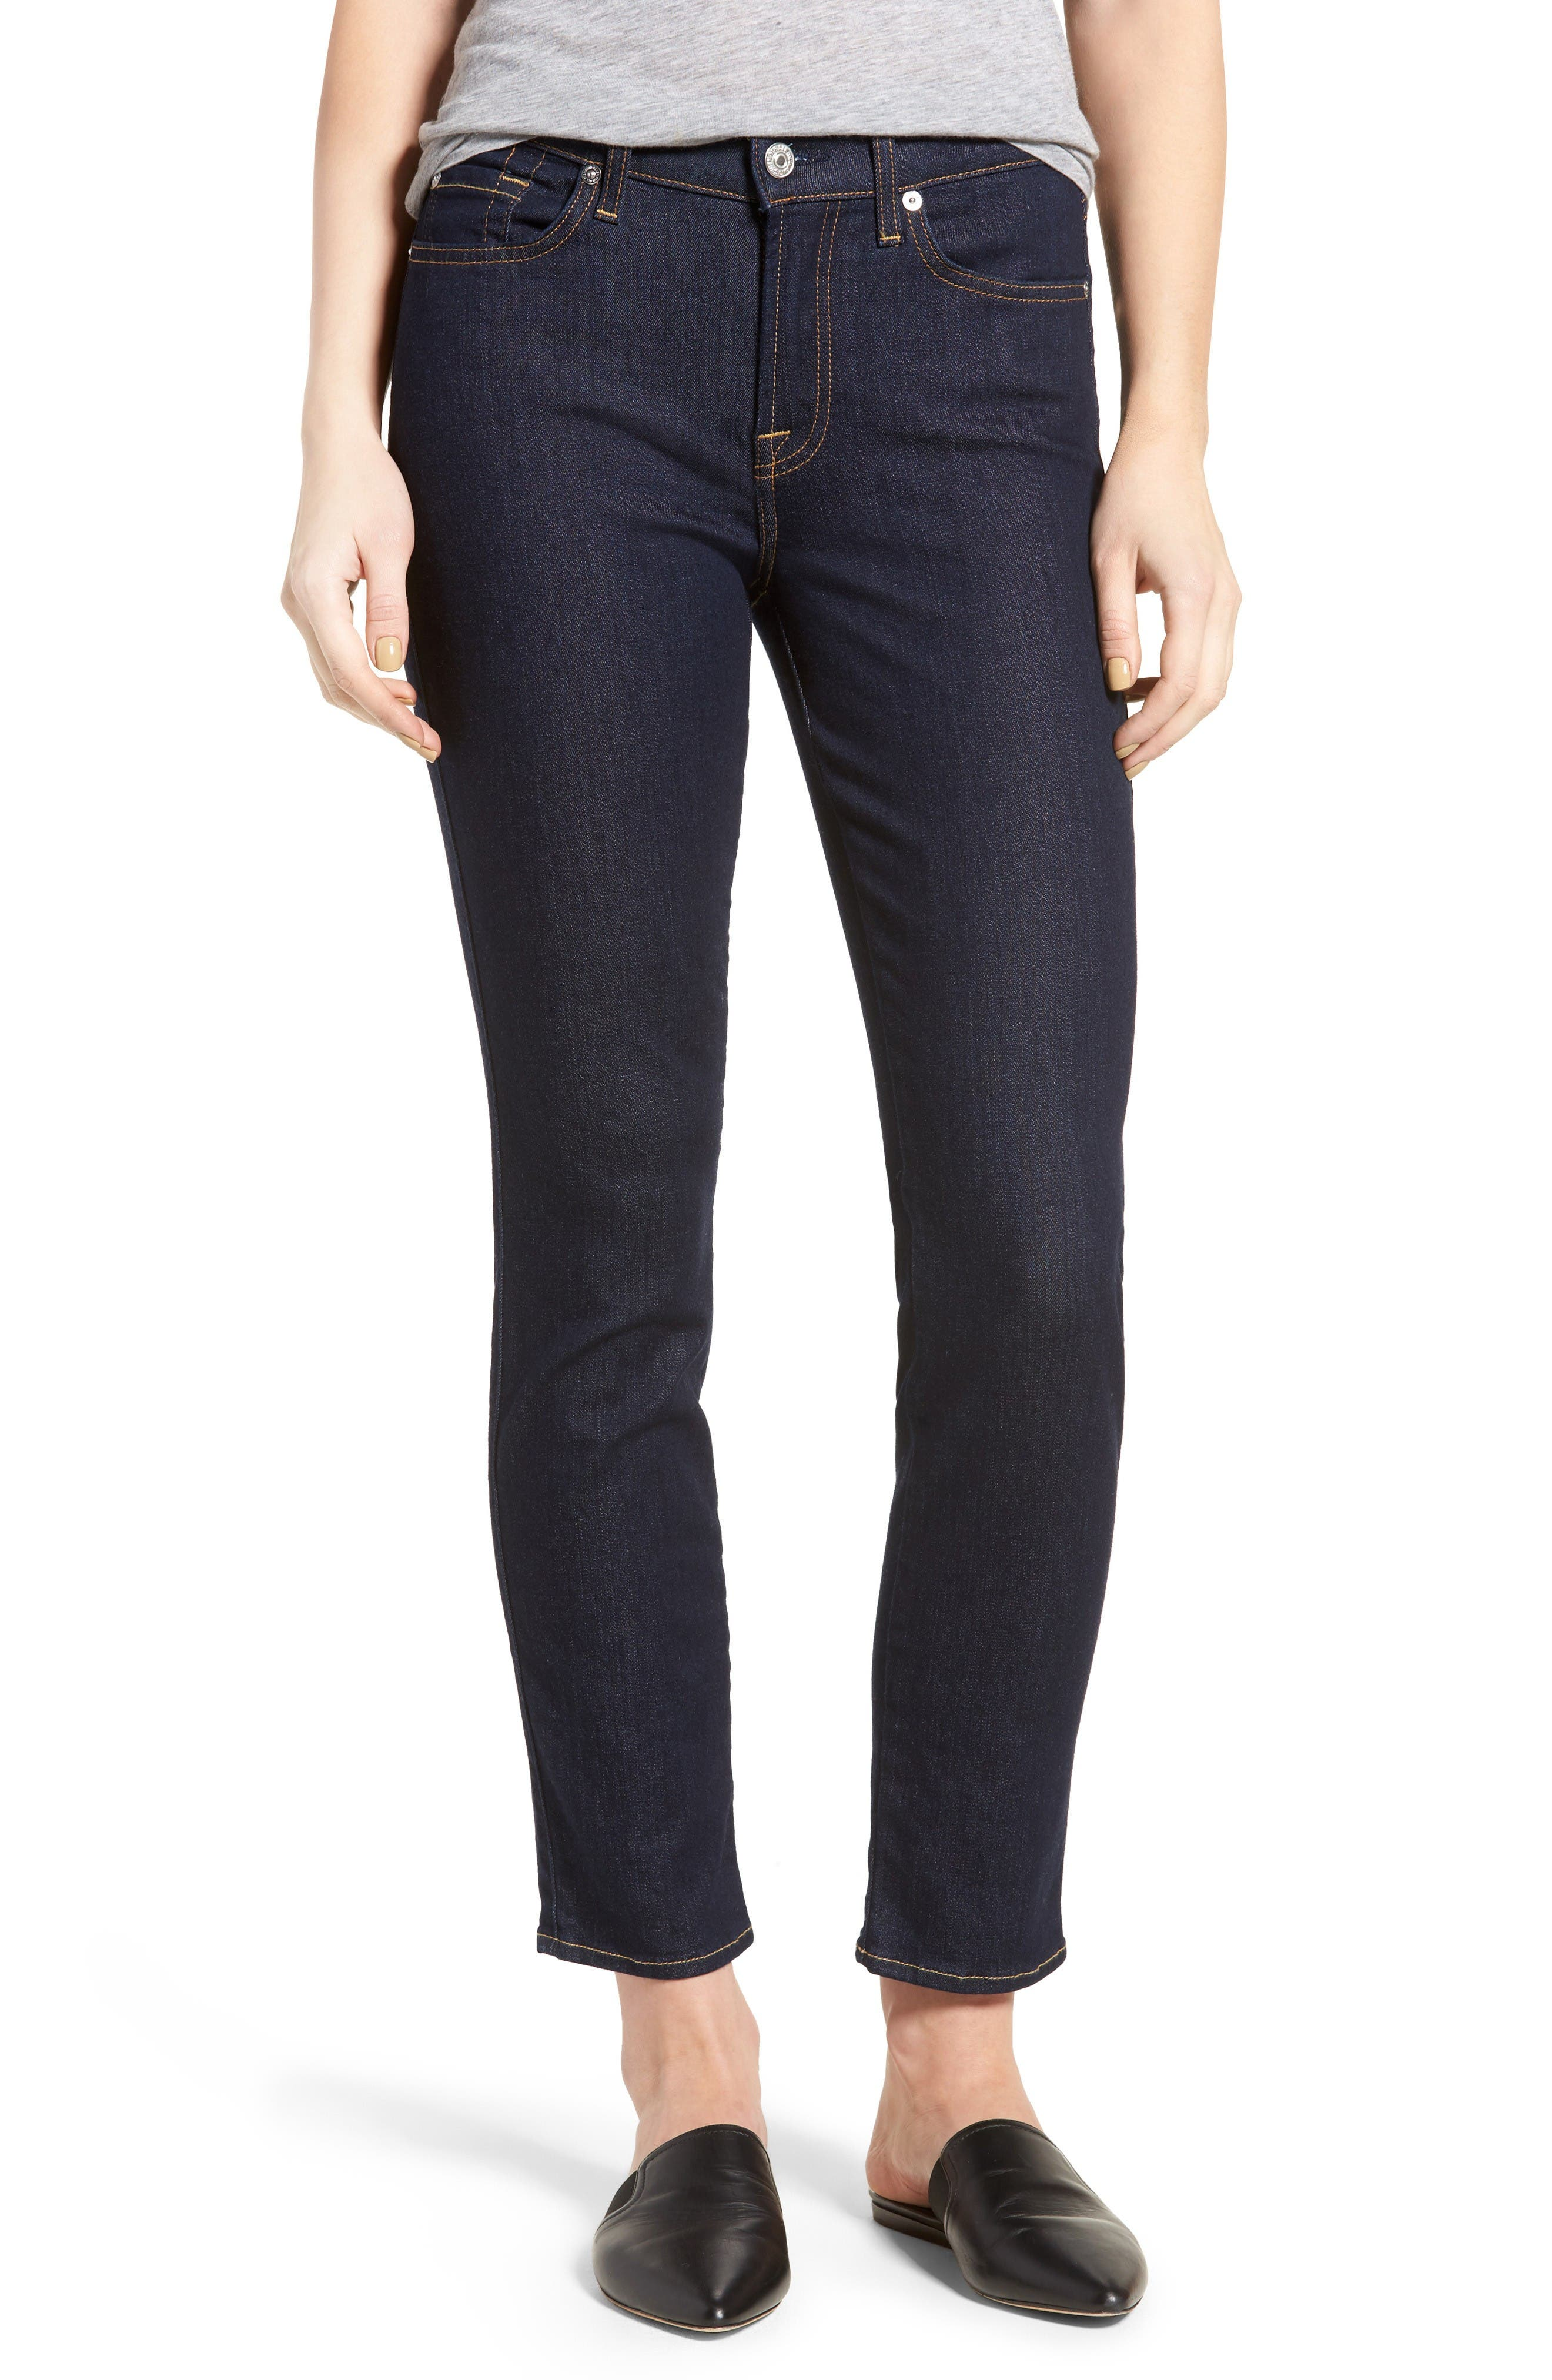 b(air) Roxanne Ankle Skinny Jeans,                             Main thumbnail 1, color,                             B(Air) Authentic Rinse